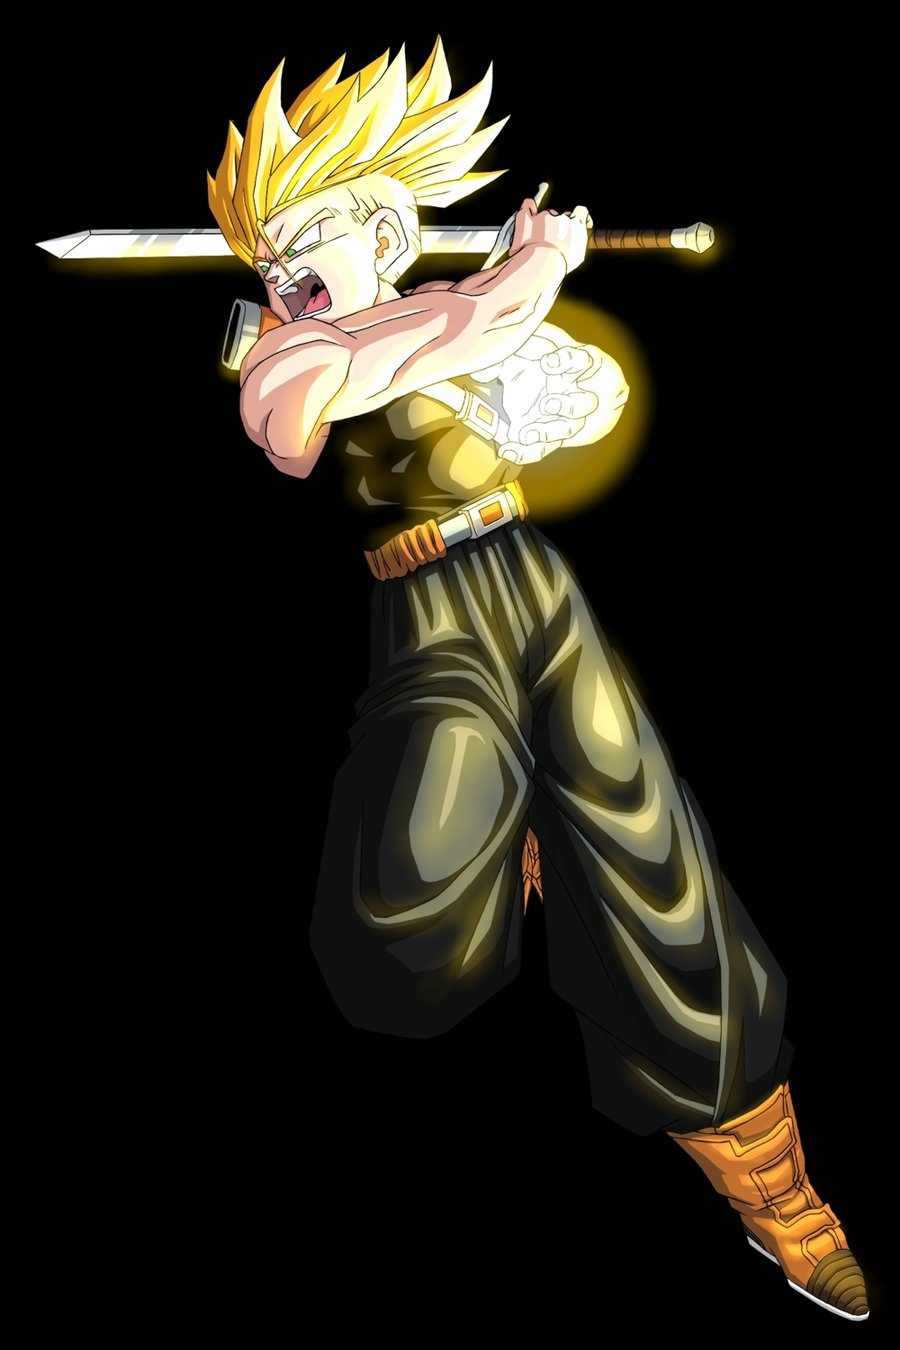 Super Saiyan Future Trunks From Dragon Ball Z